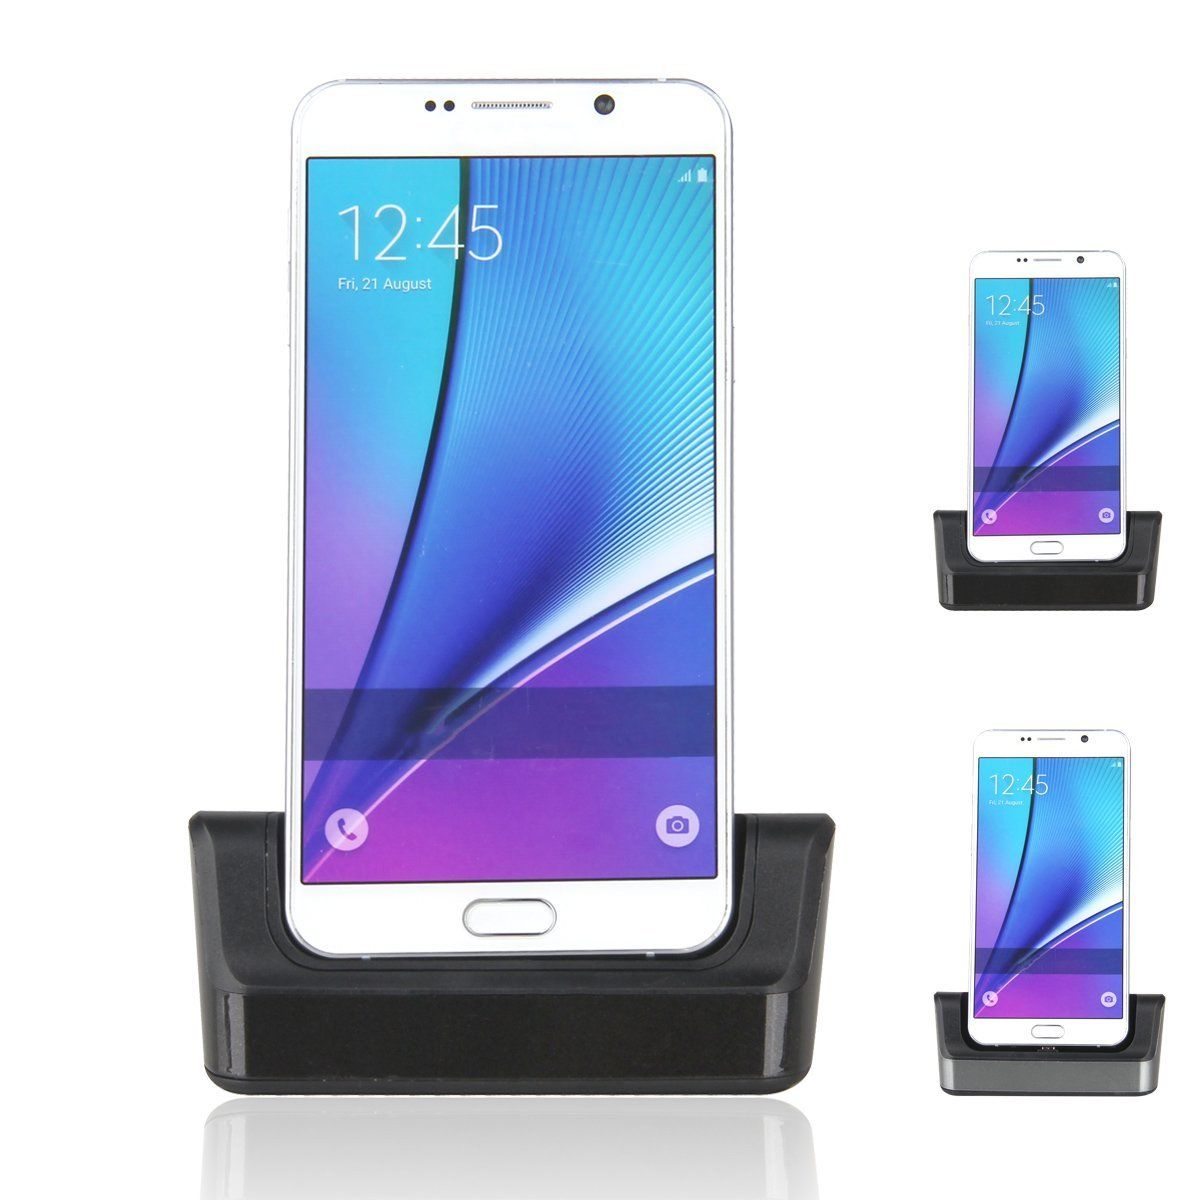 new otg docking station charger cradle charging sync data dock stand micro usb cable for. Black Bedroom Furniture Sets. Home Design Ideas